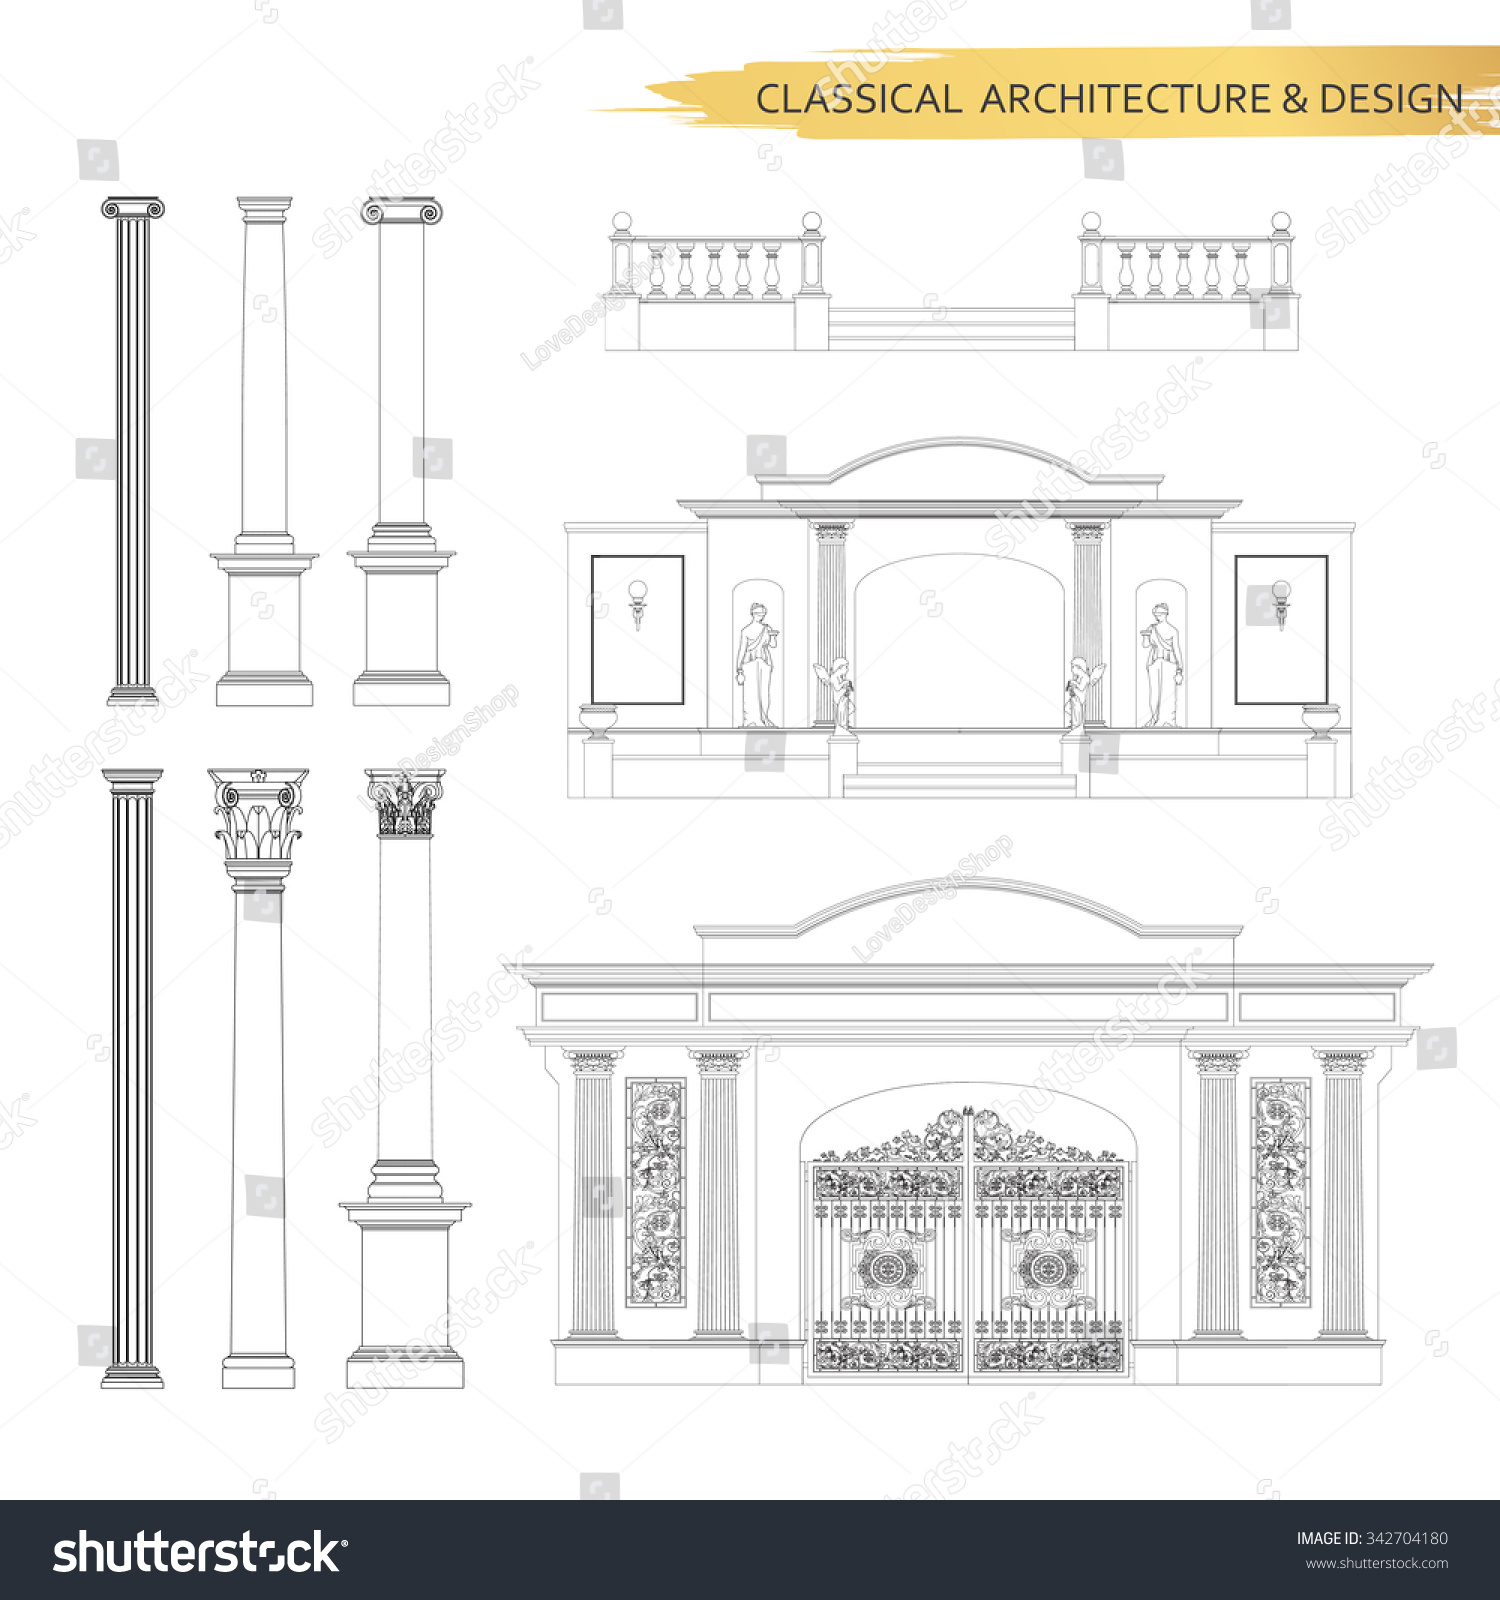 Classical Architectural Form Drawings In Set Vector